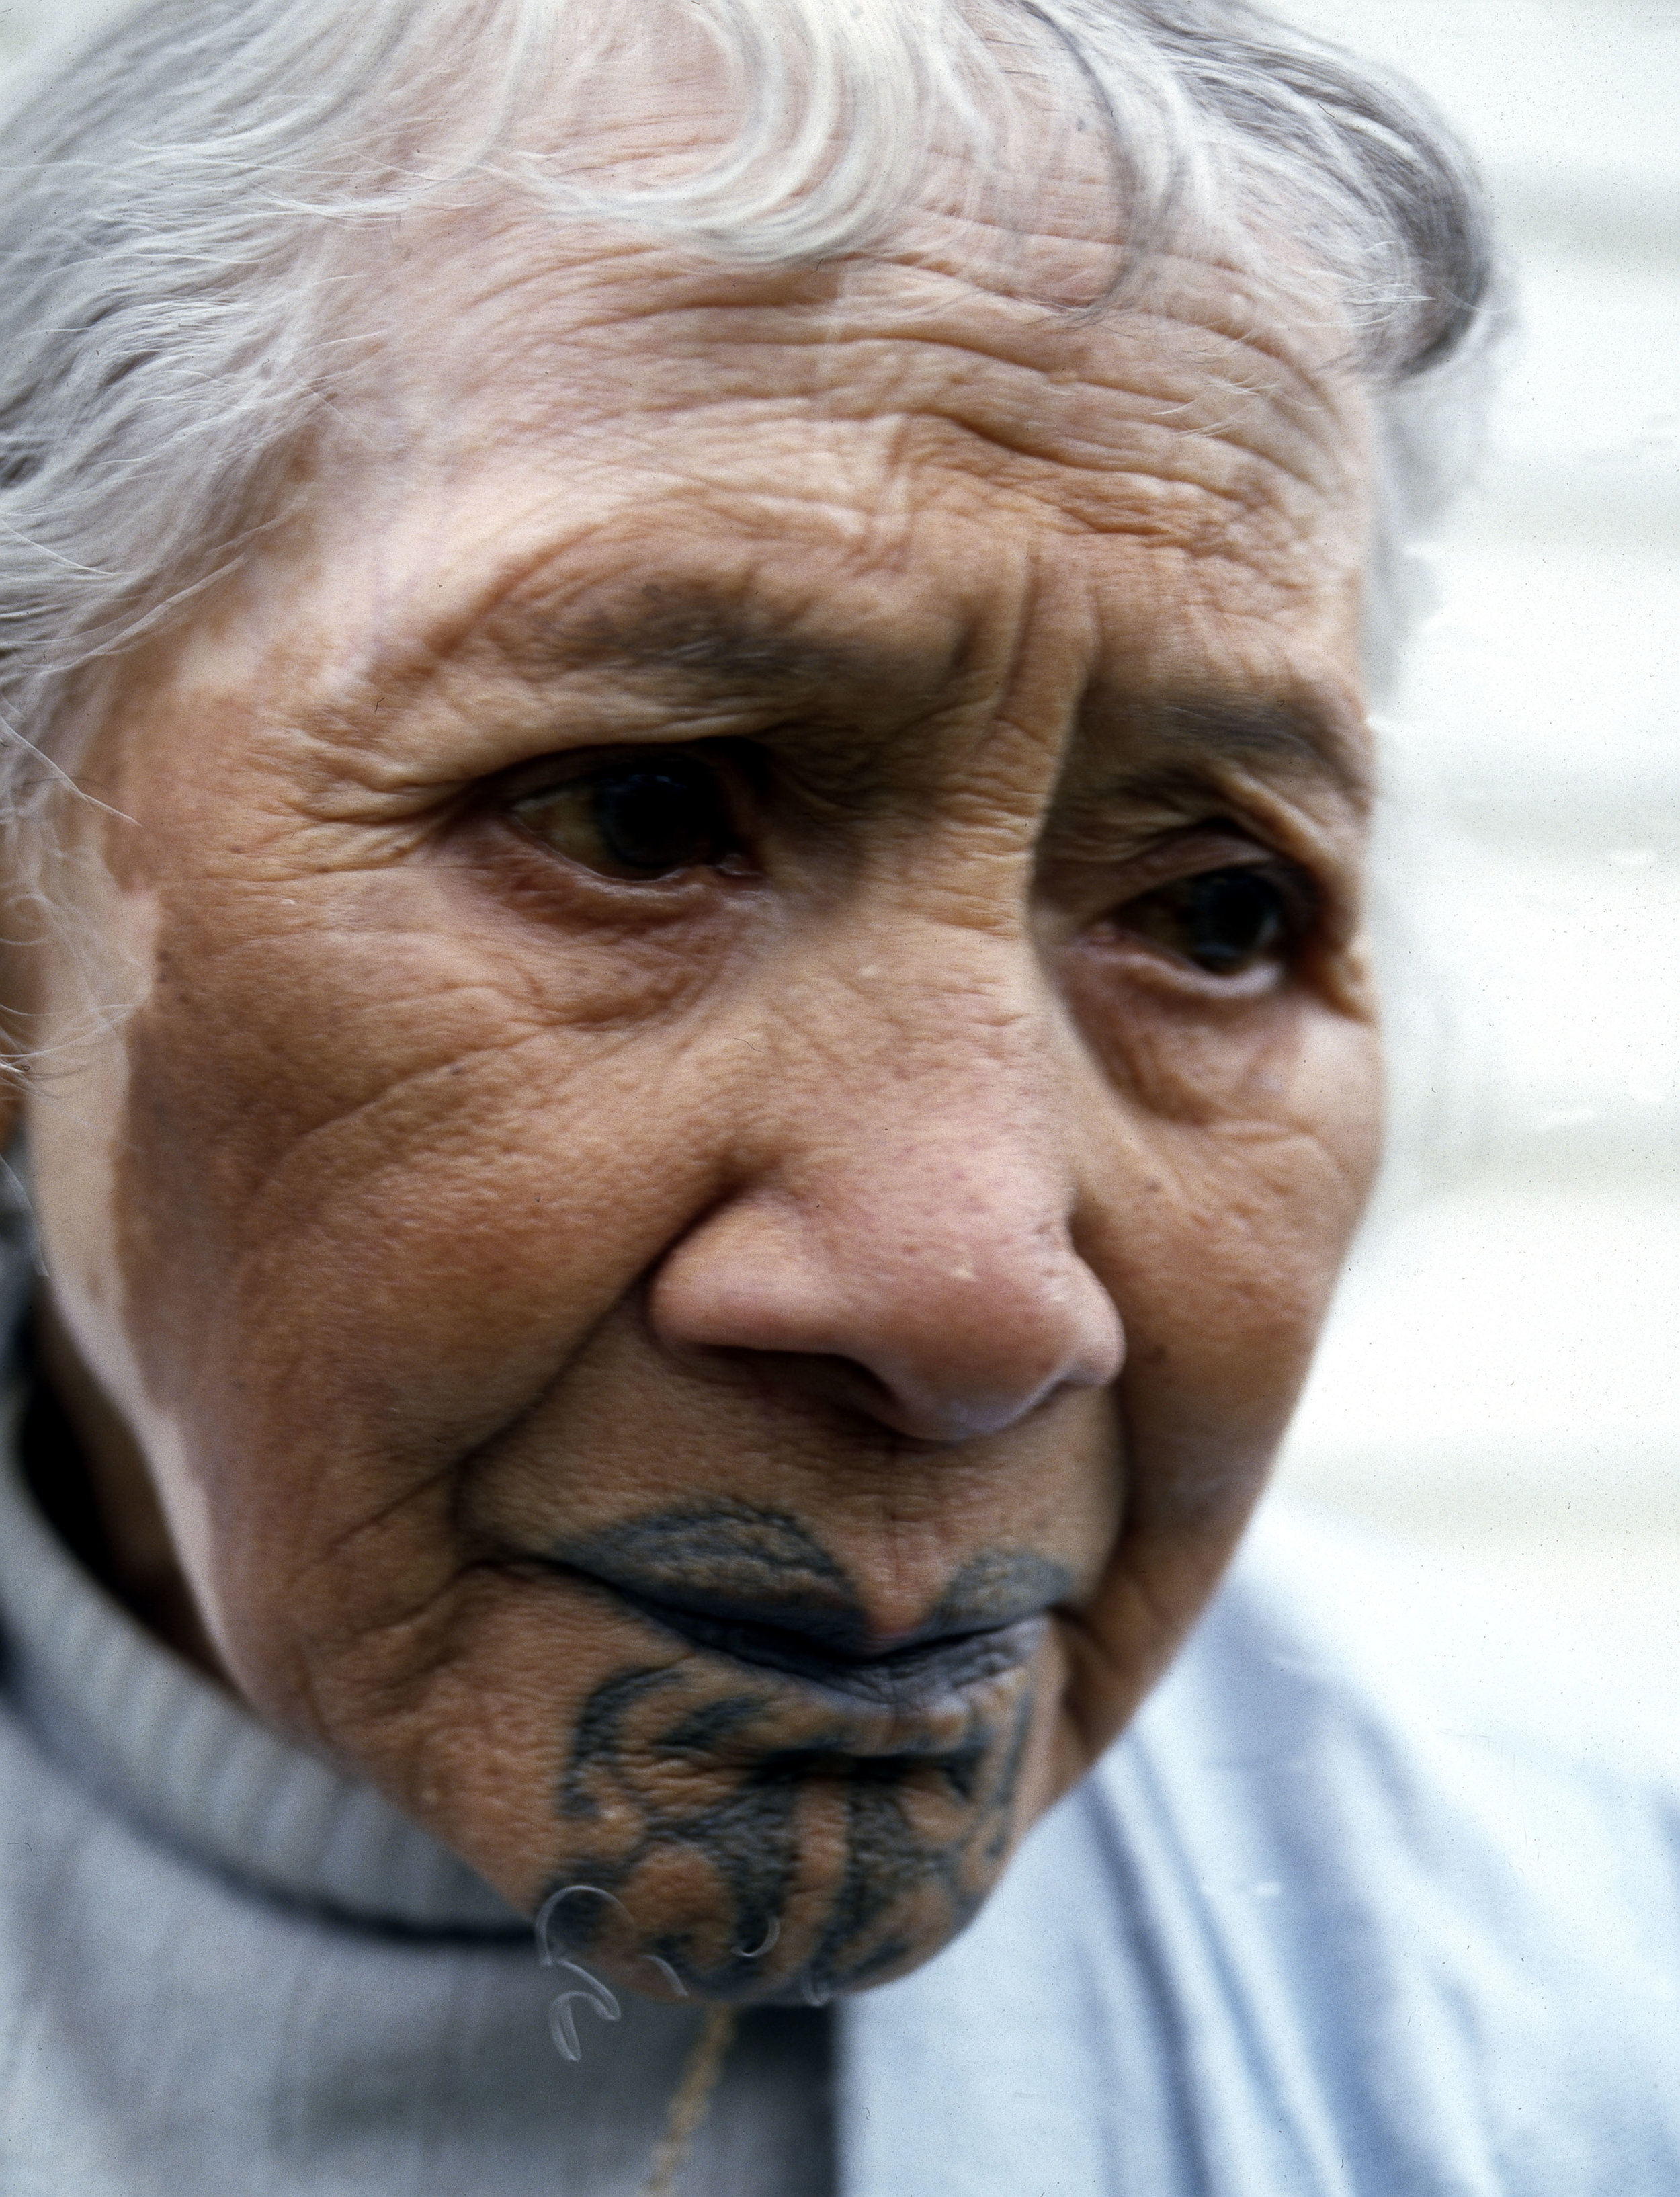 An elderly Maori woman, reputed to be the last survivor sporting a traditional moko kauae or female chin tattoo.   1980s   Inv. #: 55407012 © Werner Forman Archive